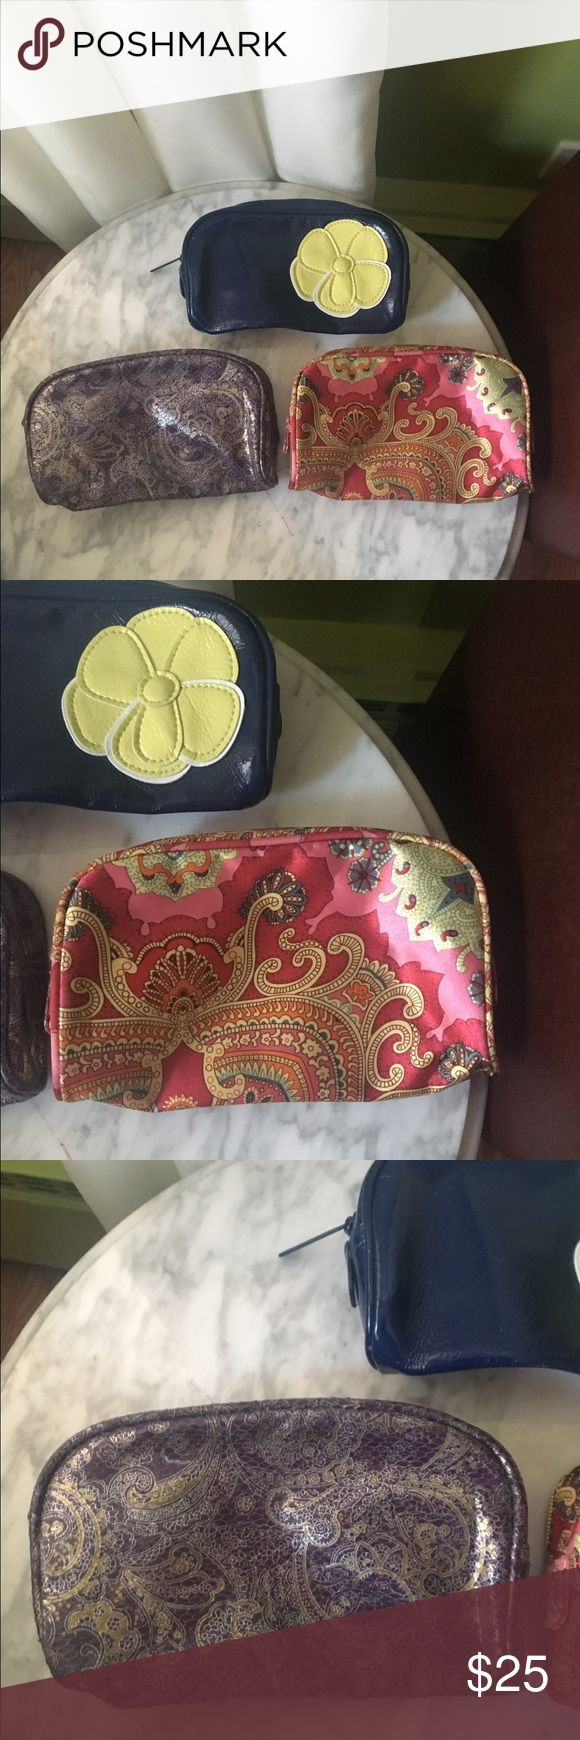 Collector Bundle of Bare Escentuals Cosmetic Bags Never used set of 3 Bare Escentuals Cosmetic bags. Variety of colors and prints. Bare Escentuals Bags Cosmetic Bags & Cases